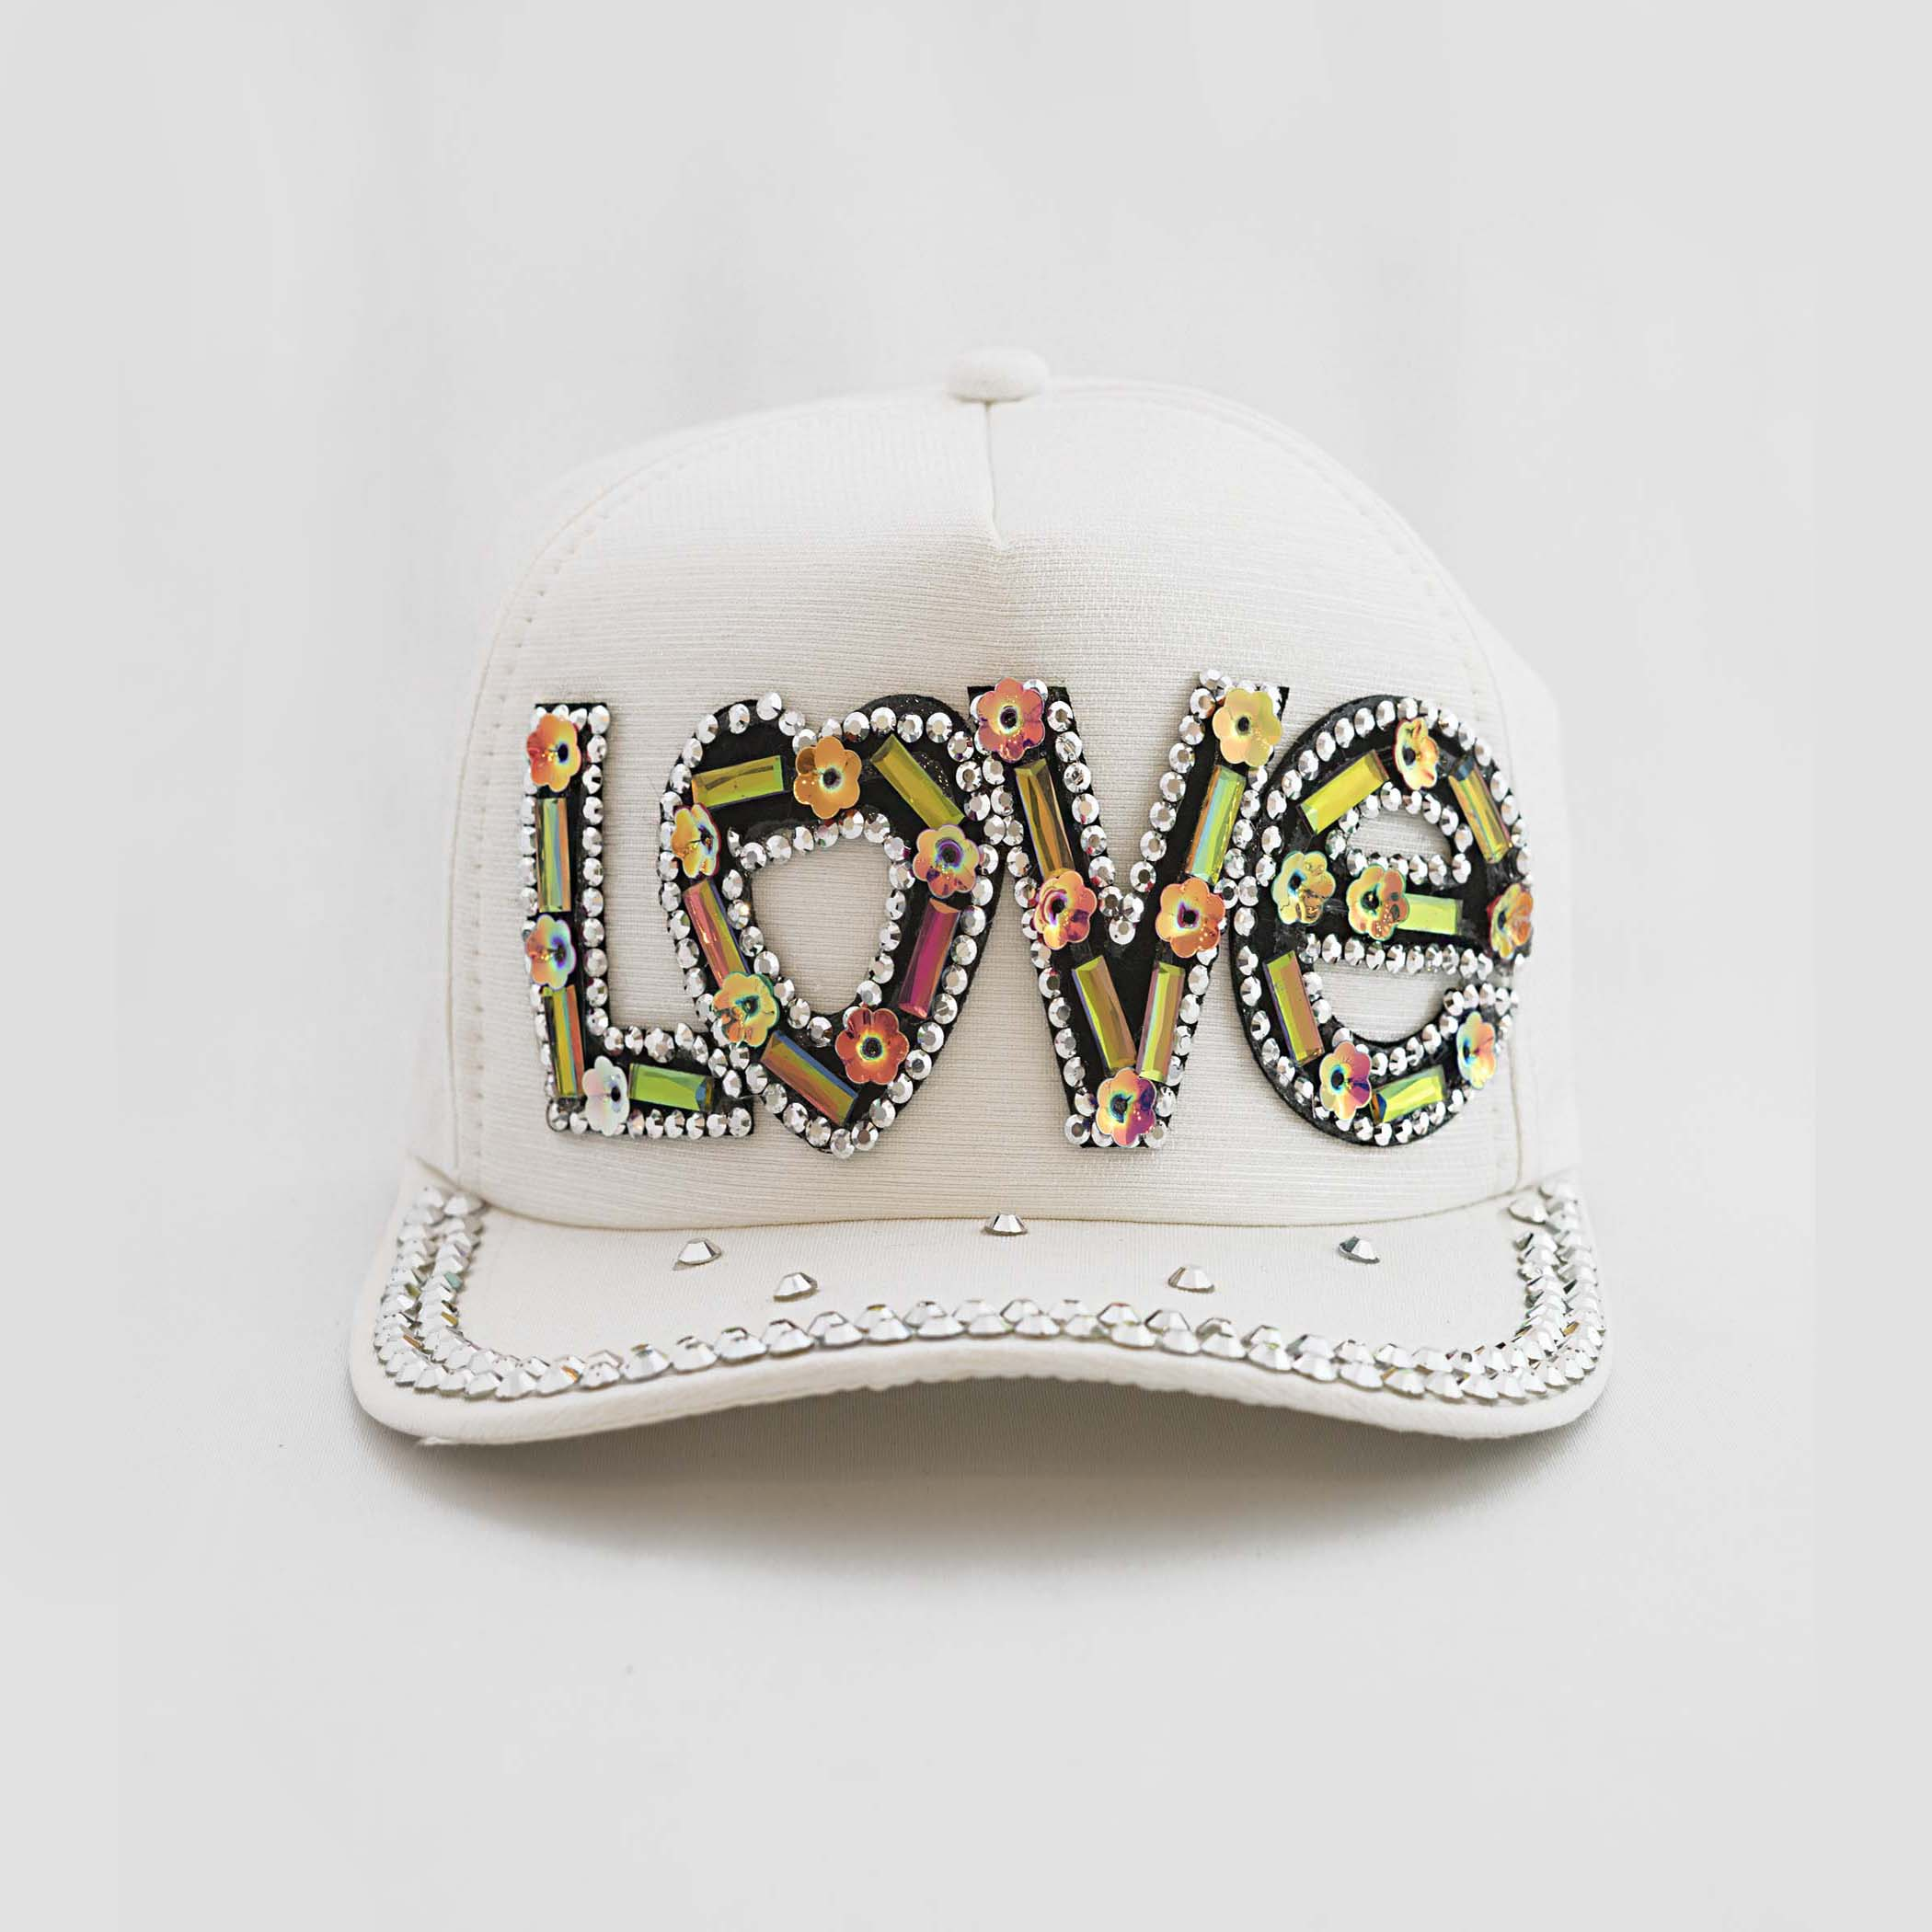 The Love Me Princess Trucker Cap Hat Sienna Likes To Party